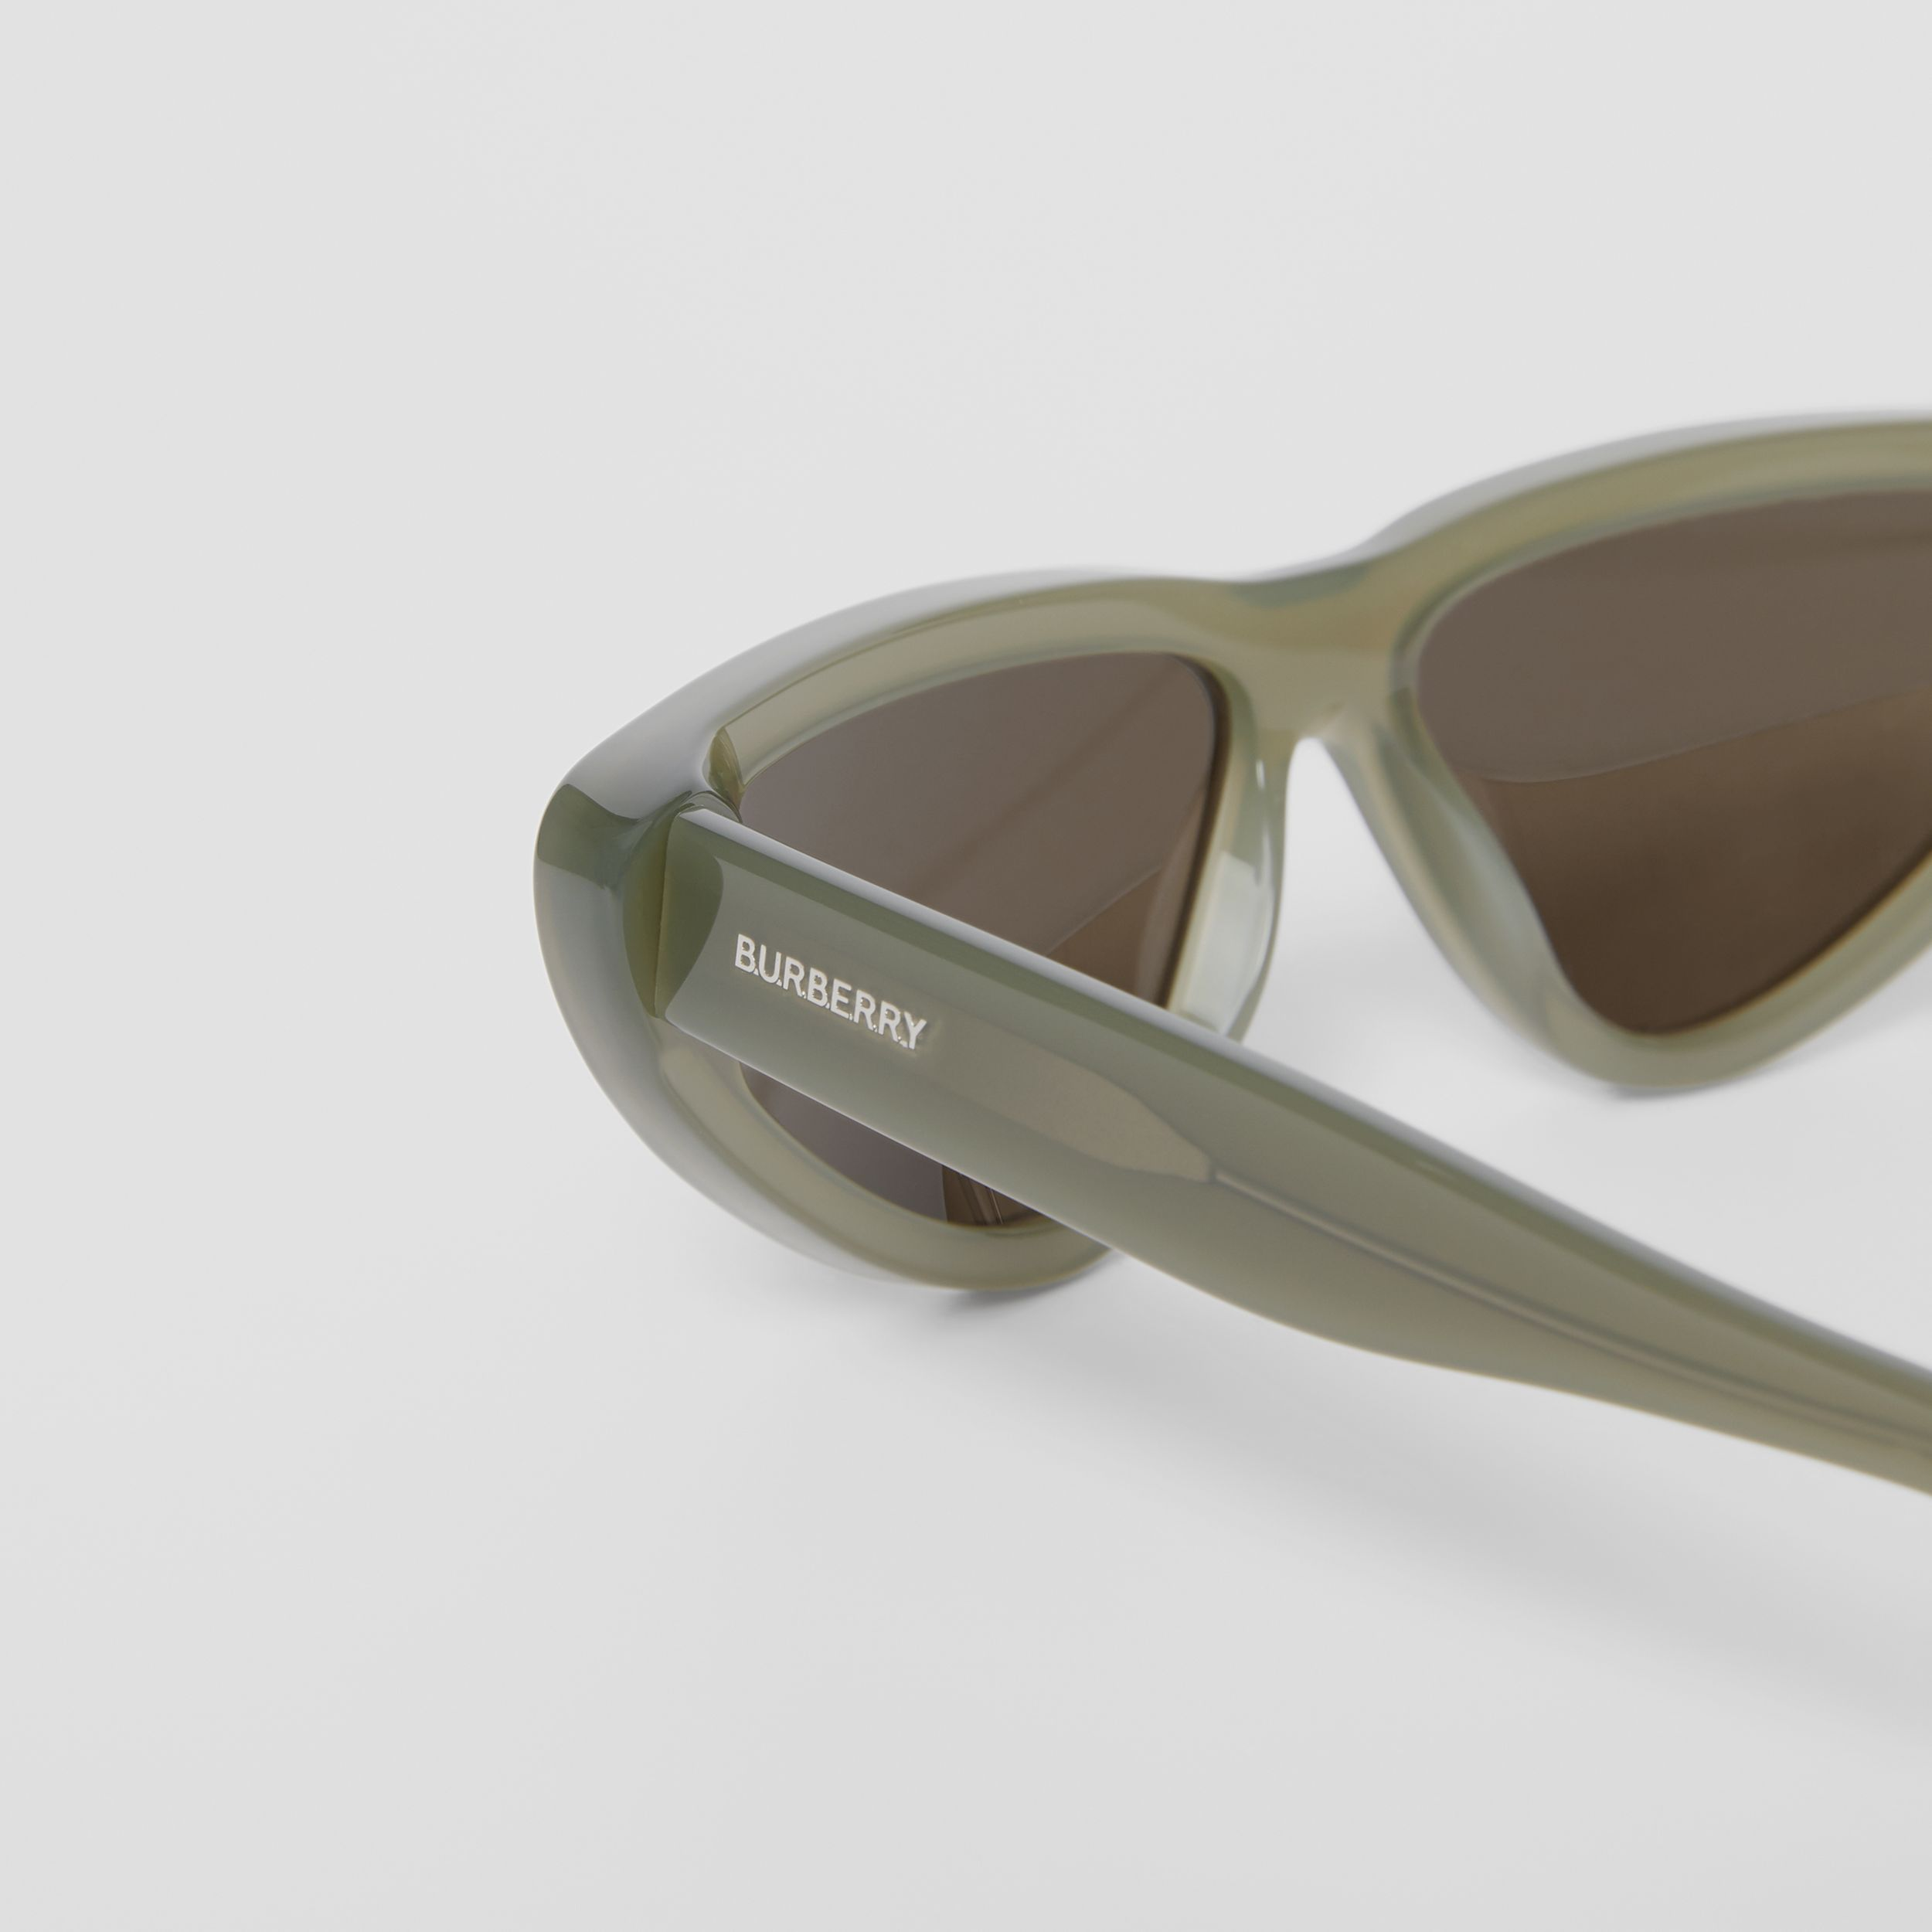 Triangular Frame Sunglasses in Opal Green | Burberry - 2